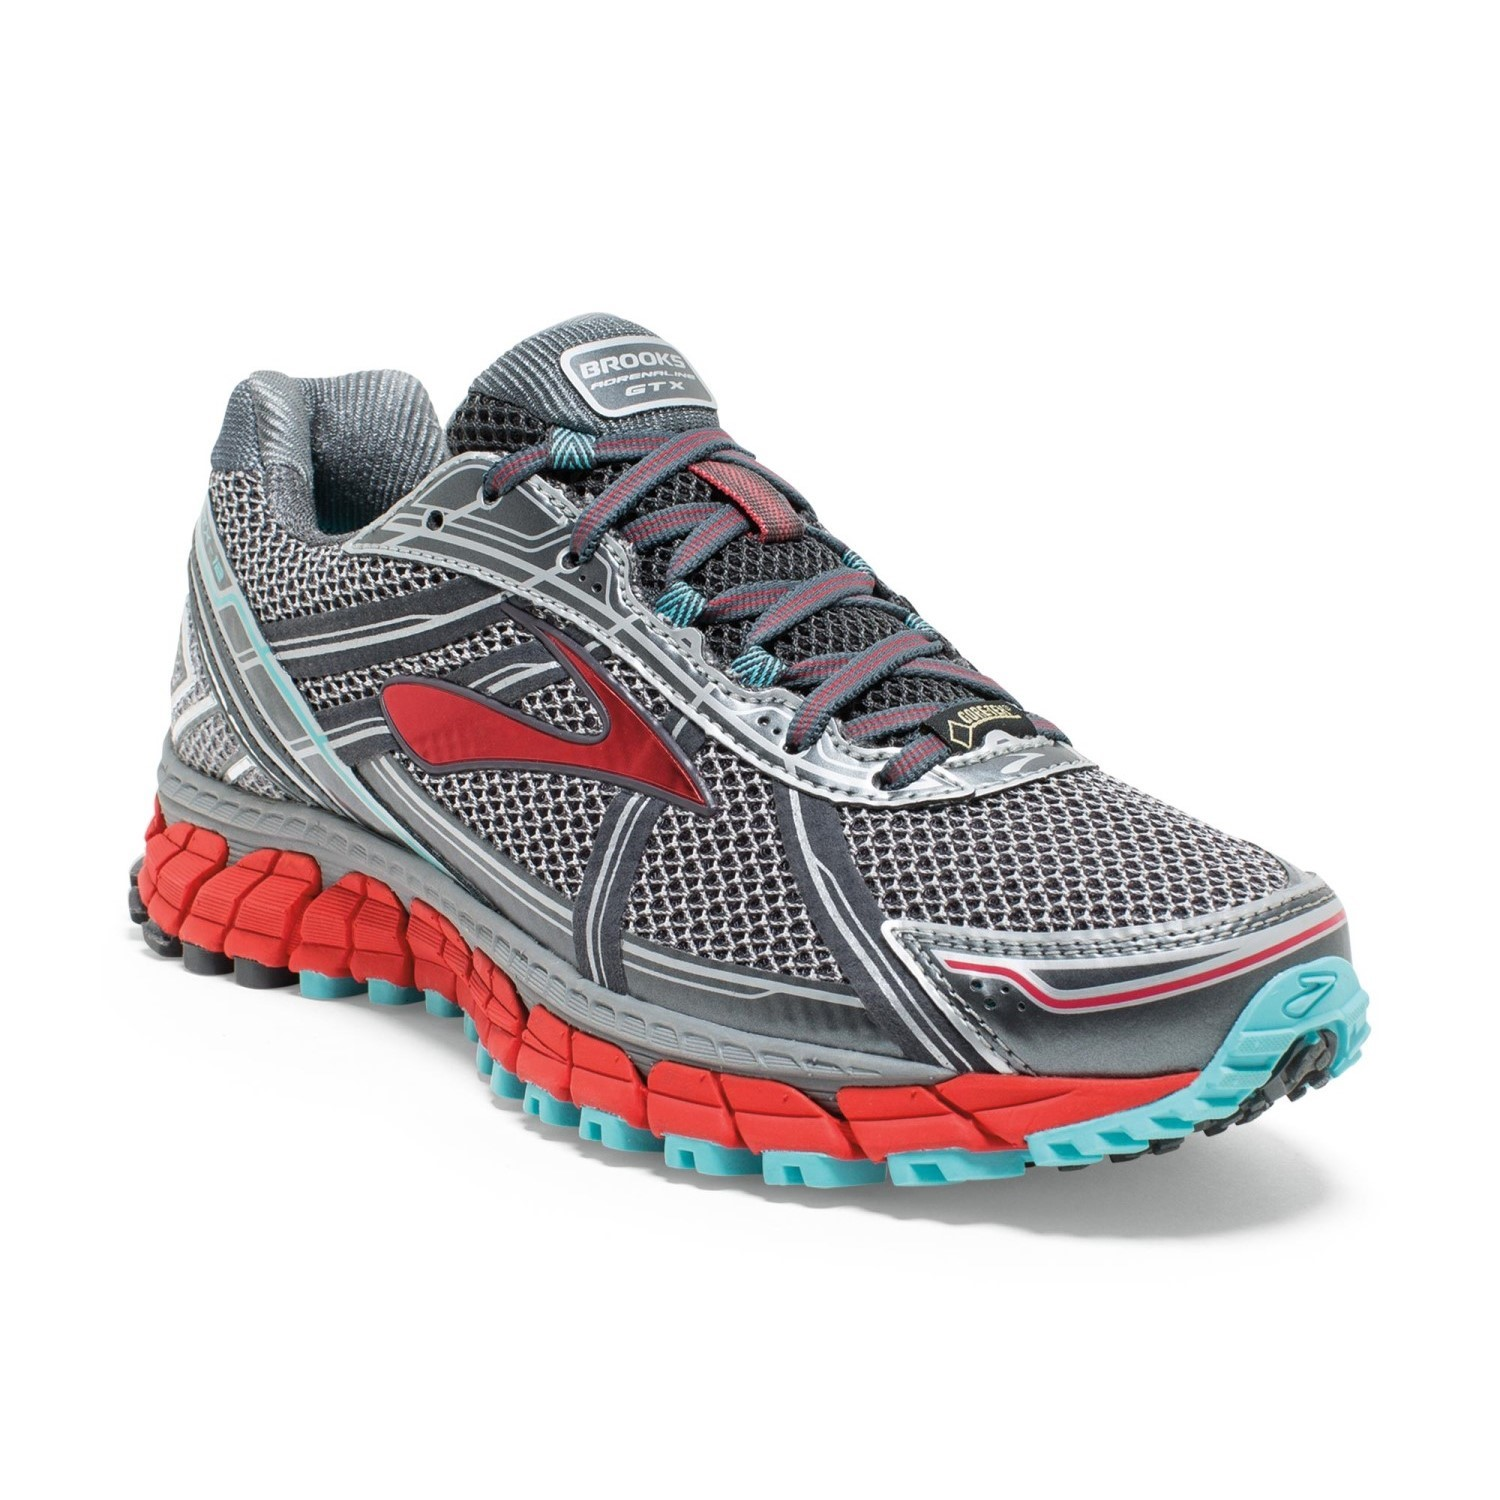 4a3a0f12b4f44 Brooks Adrenaline ASR 12 GTX - Womens Trail Running Shoes -  Anthracite Hibiscus Capri